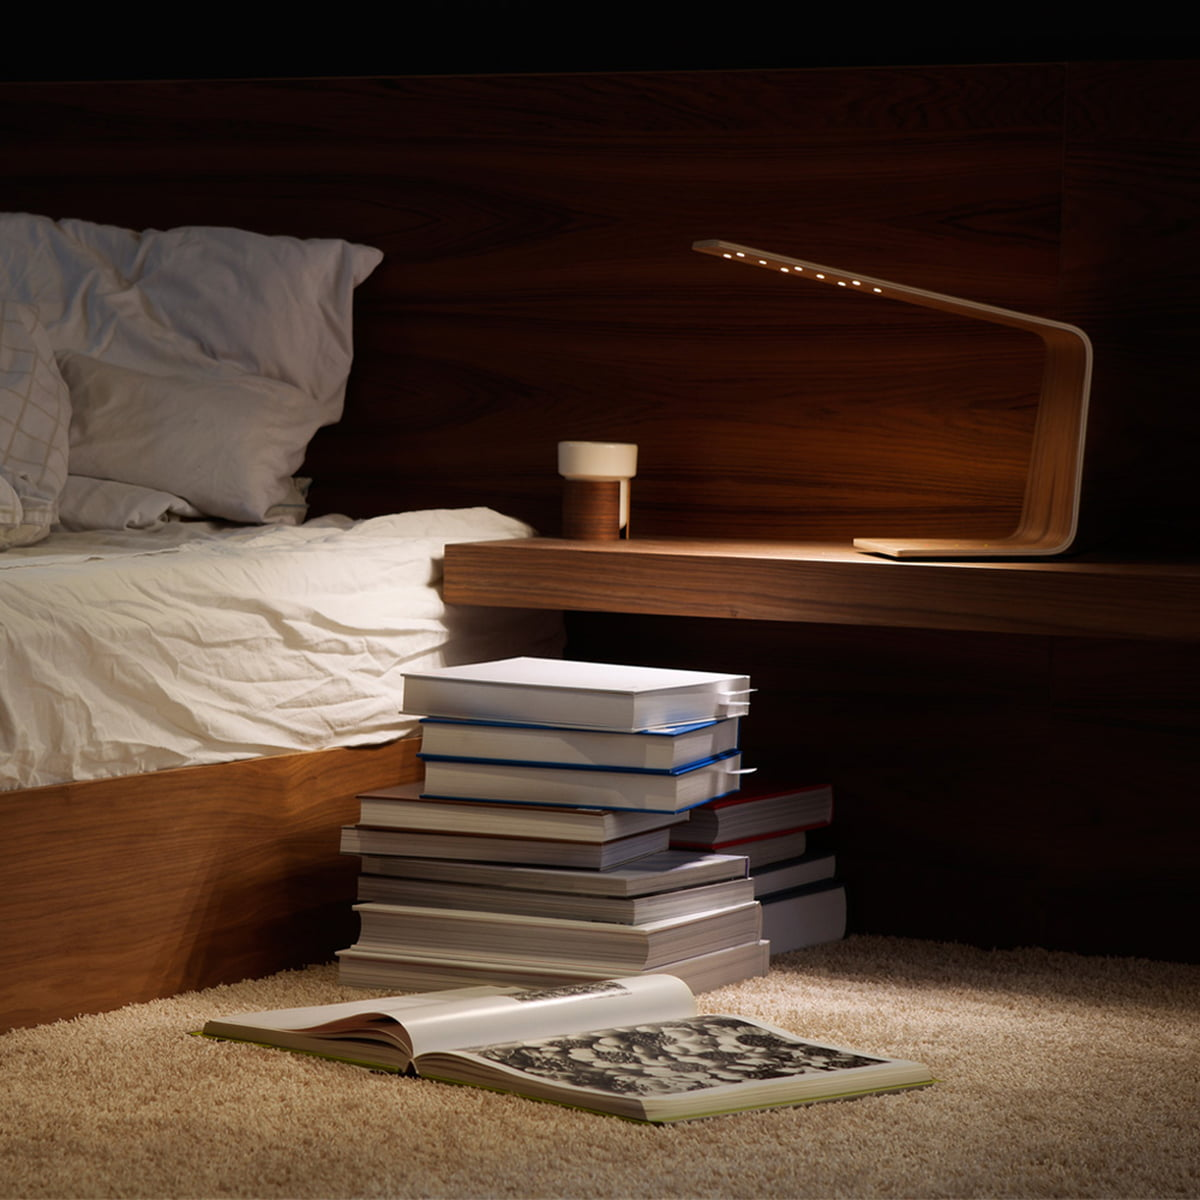 Led 1 Table Lamp Invites One To Read In Bed